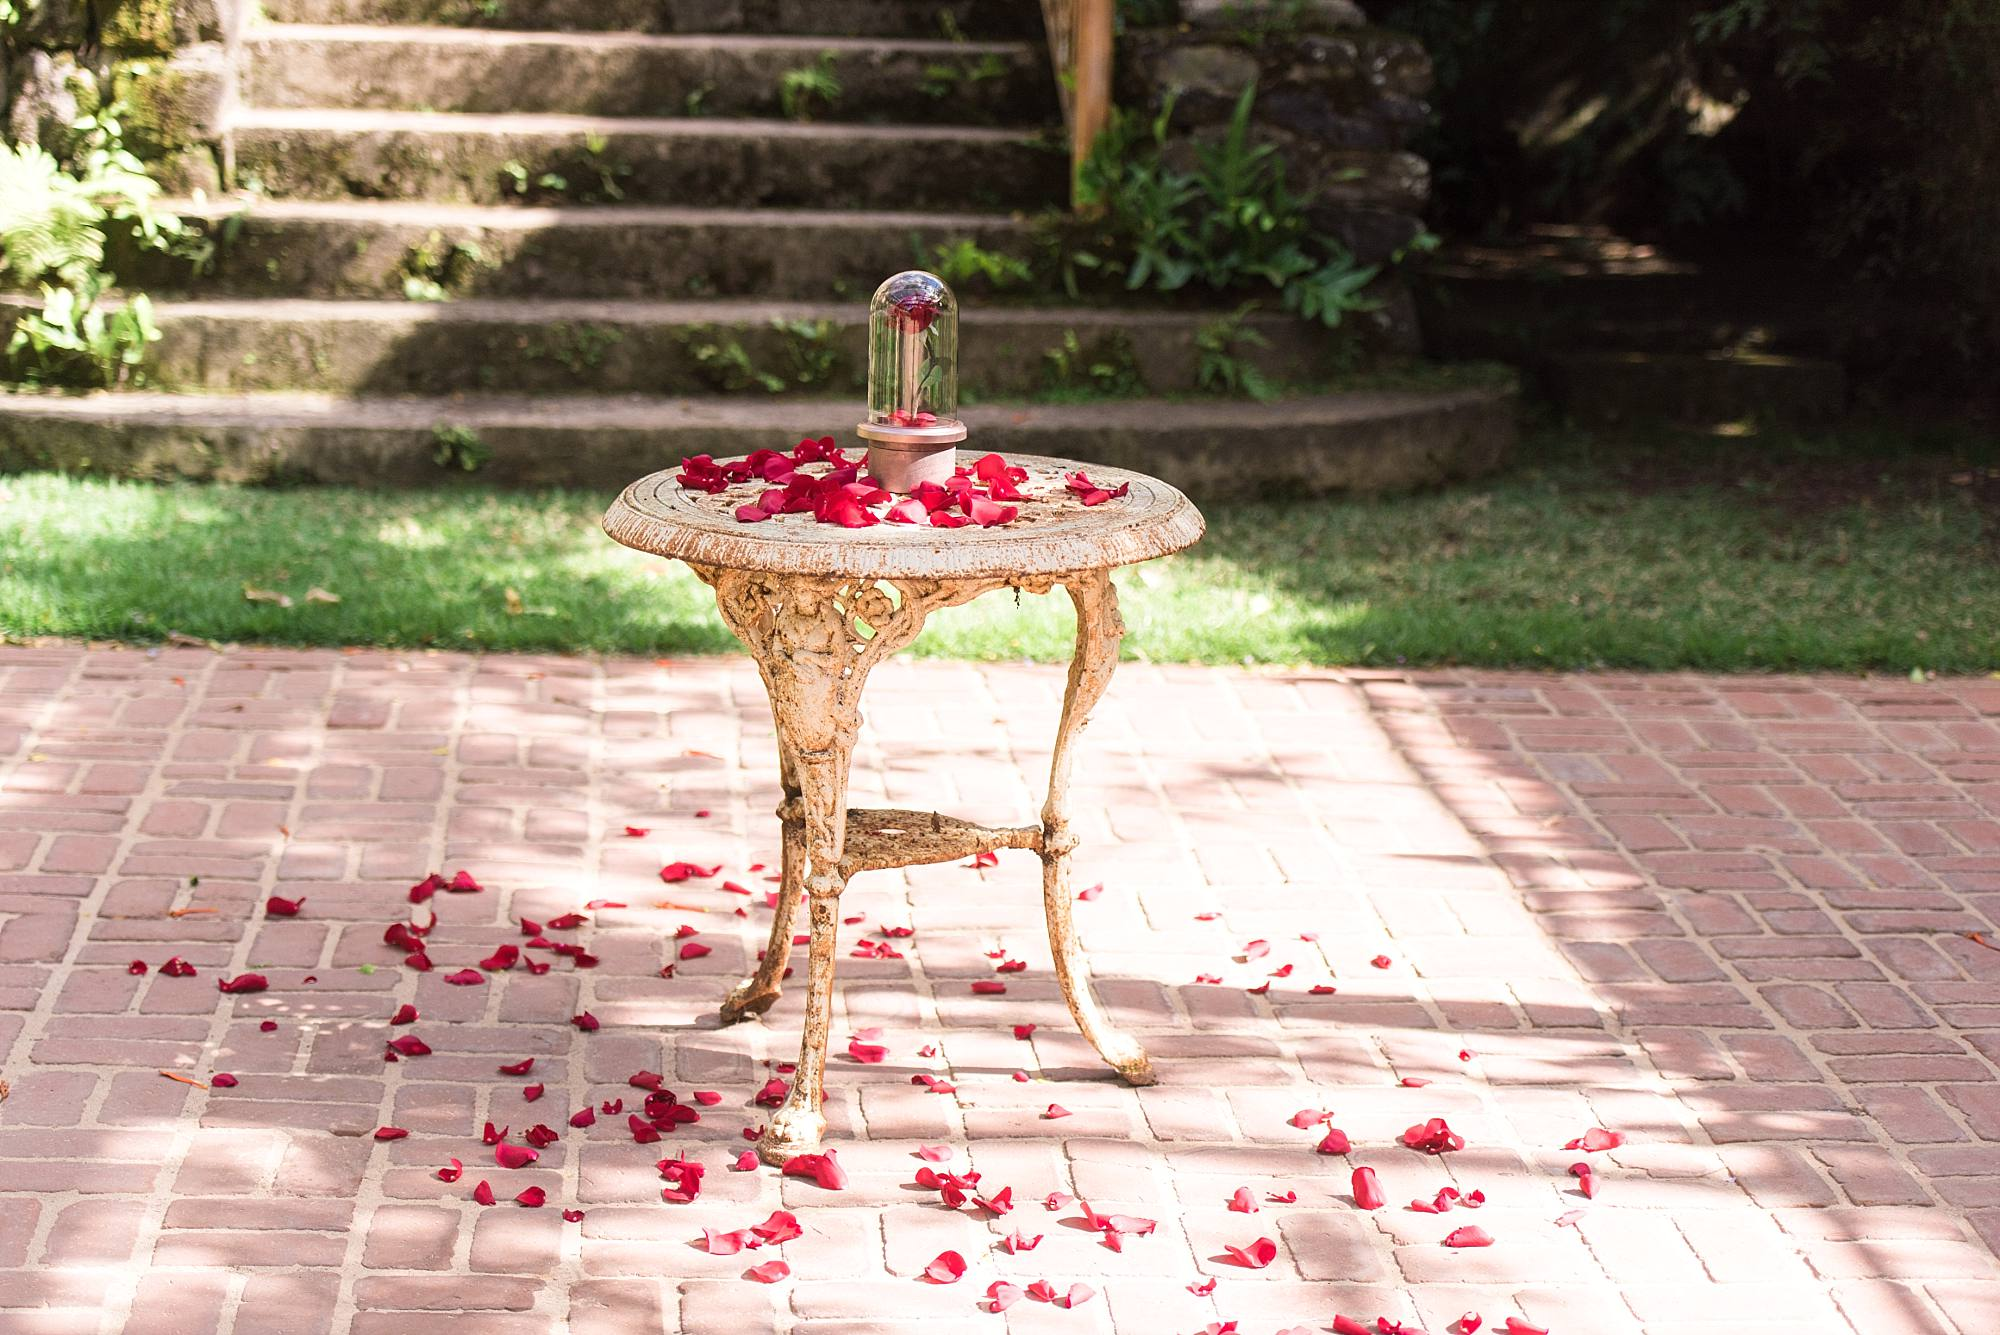 Beauty and the Beast rose sitting on a table with rose petals strewn around it